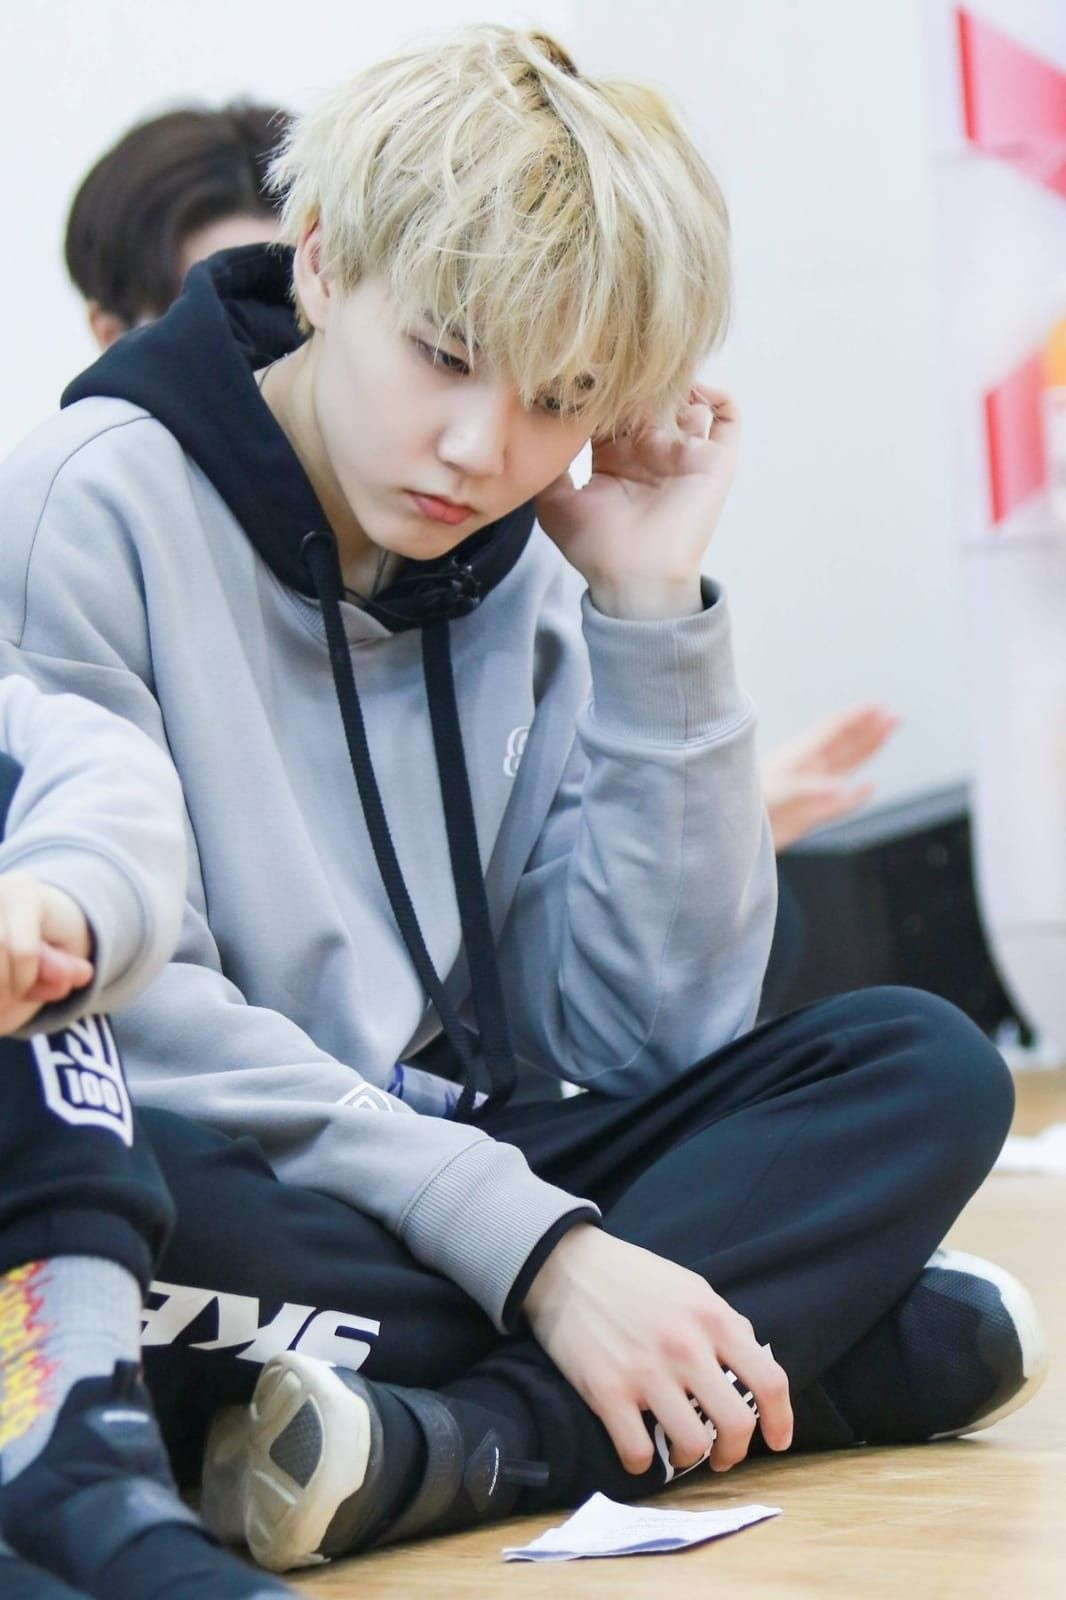 Pin By Keren On Min Yoongi Pinterest Bts Min Suga And Bts Suga